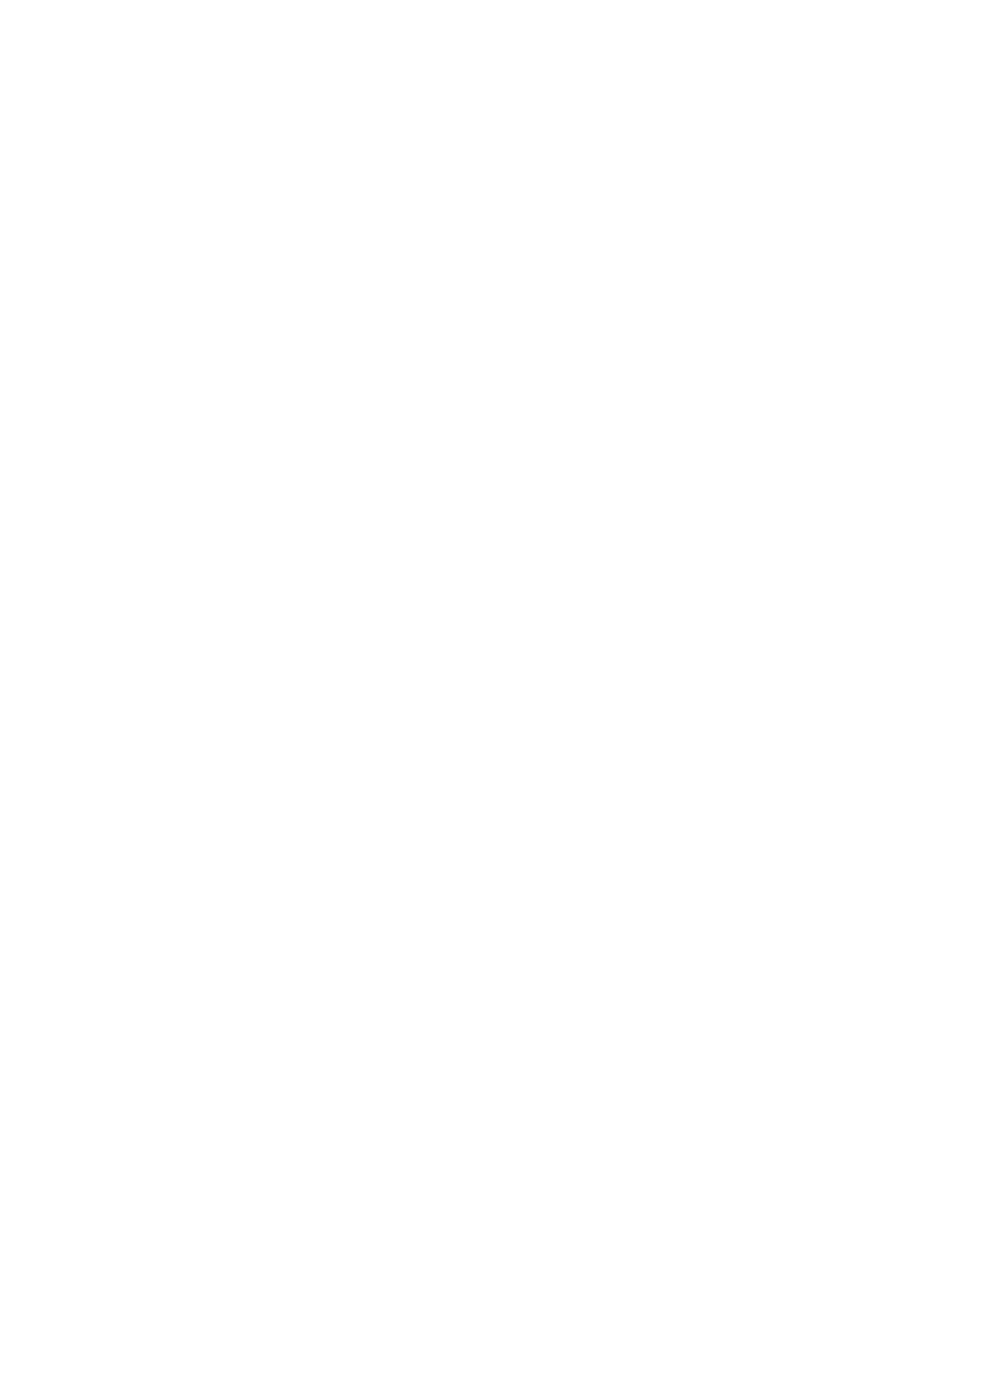 EMERGENCY CARE.png